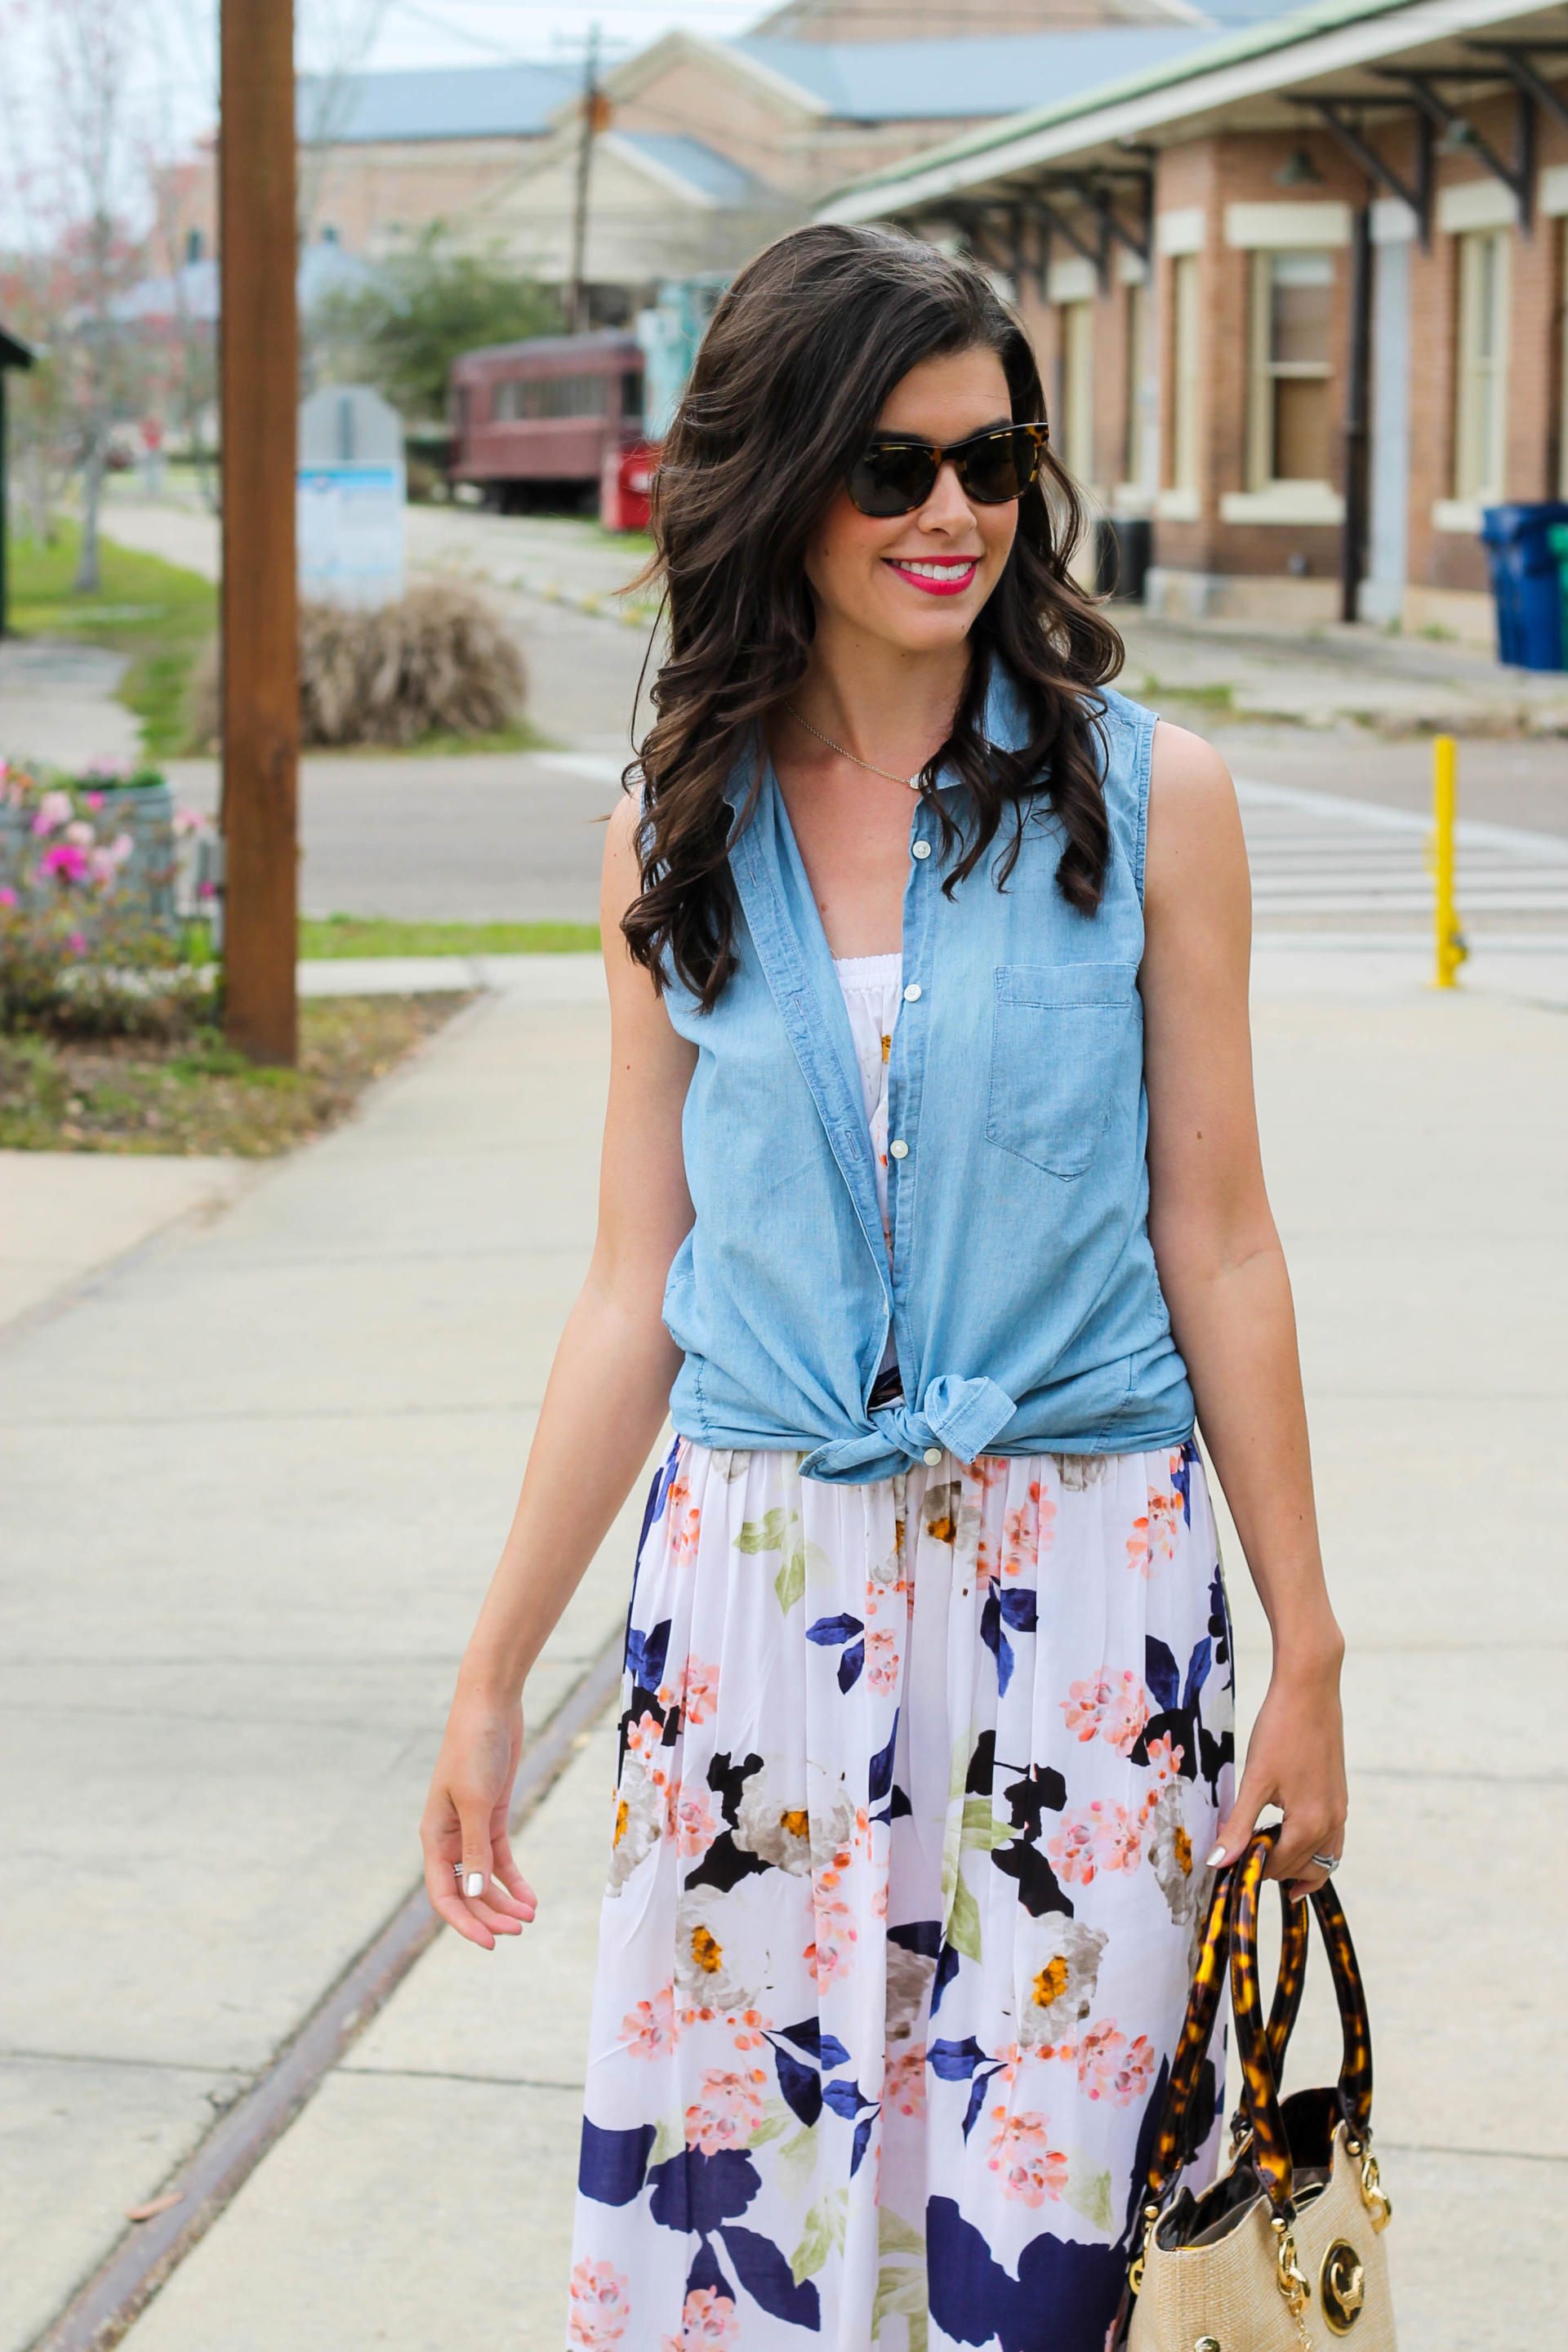 Floral Maxi Dress For Spring